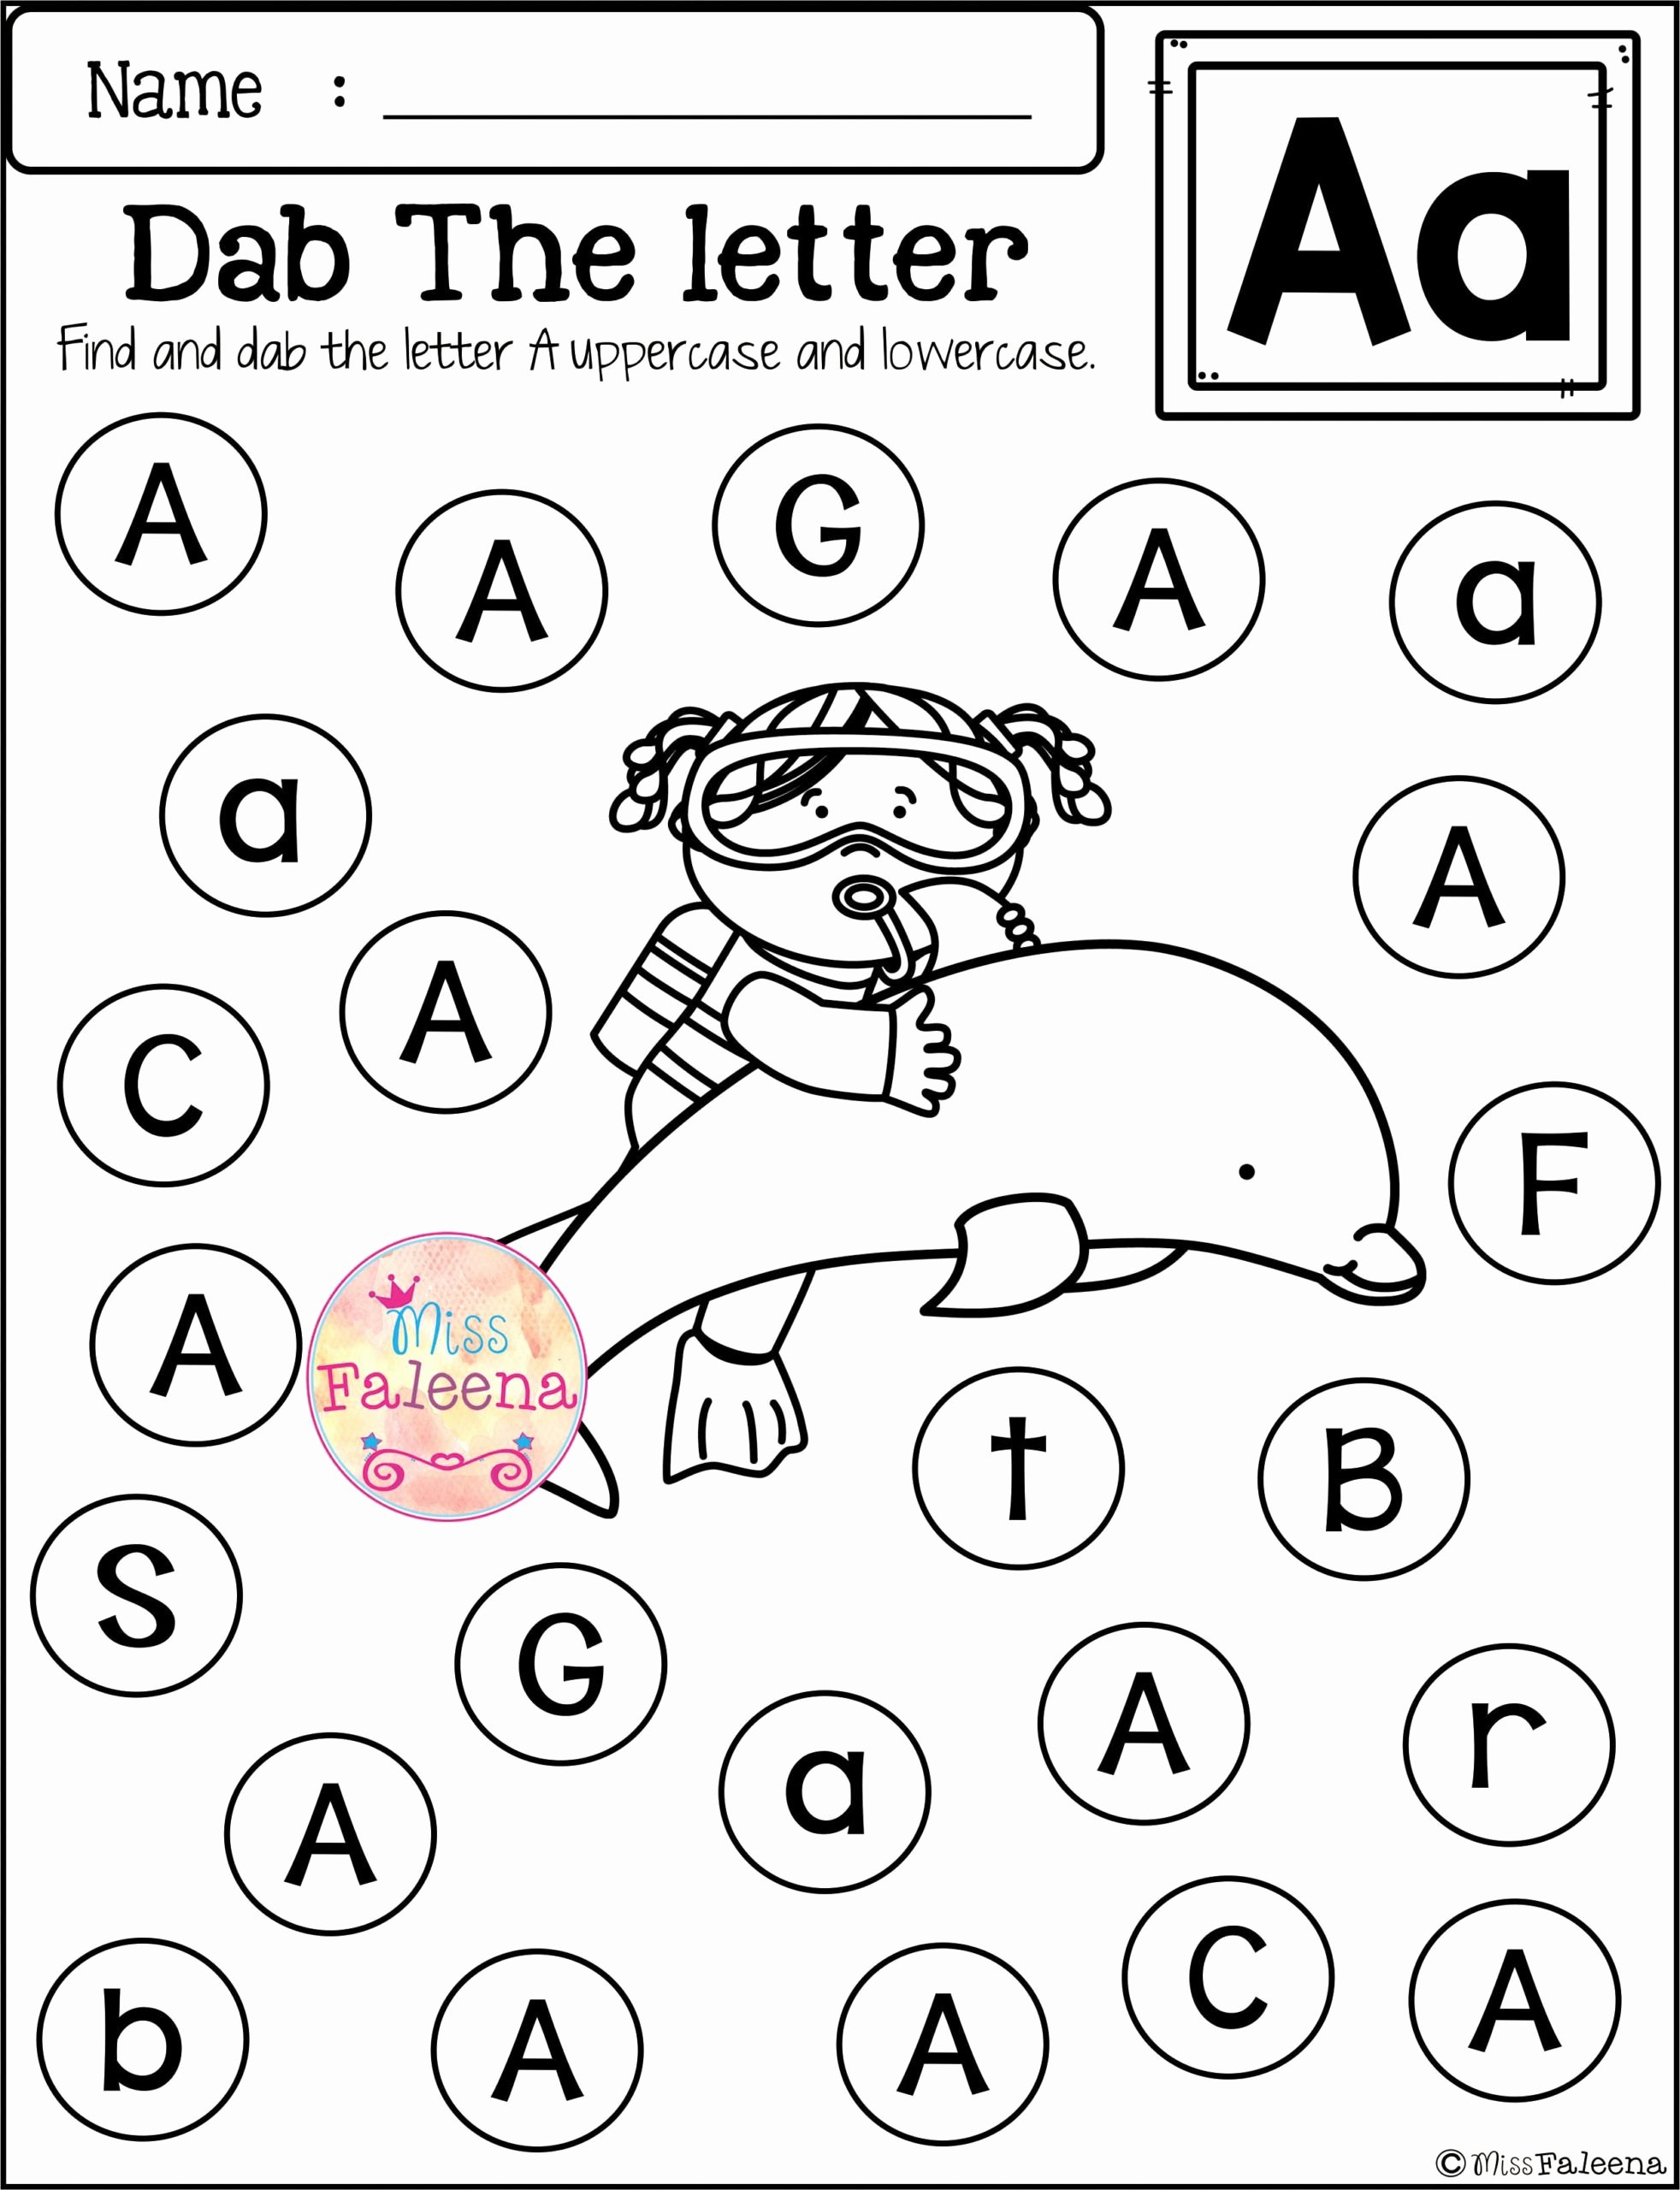 Worksheets for Preschoolers Alphabet Inspirational Worksheets Free Alphabet Kindergarten Worksheets Preschool